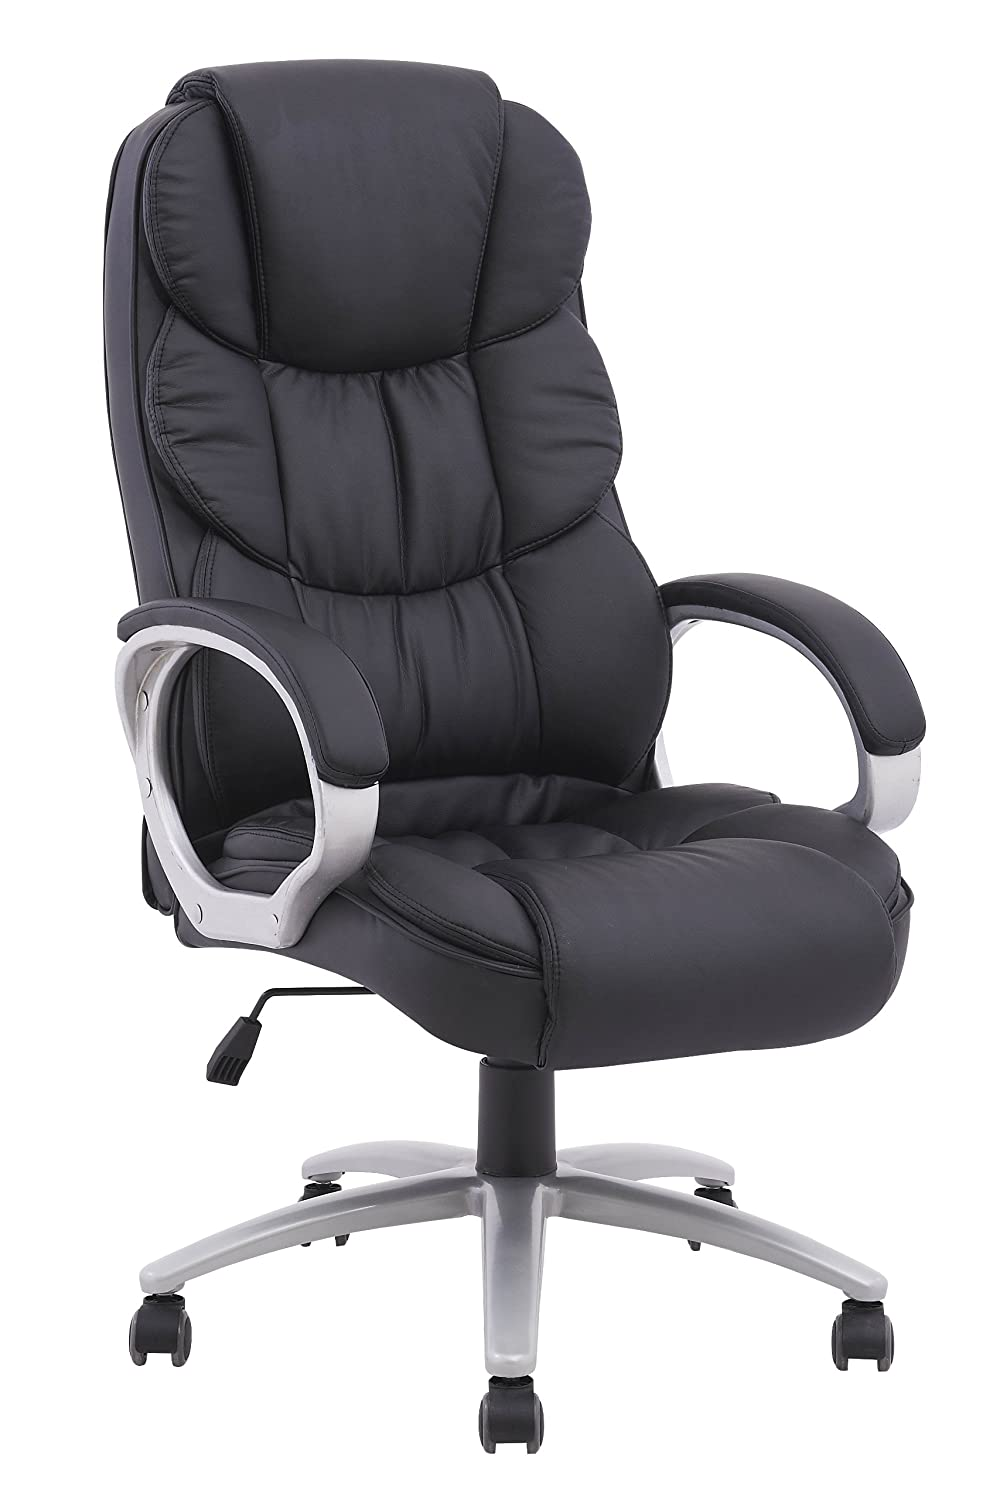 amazoncom bestoffice ergonomic pu leather high back office chair black kitchen u0026 dining